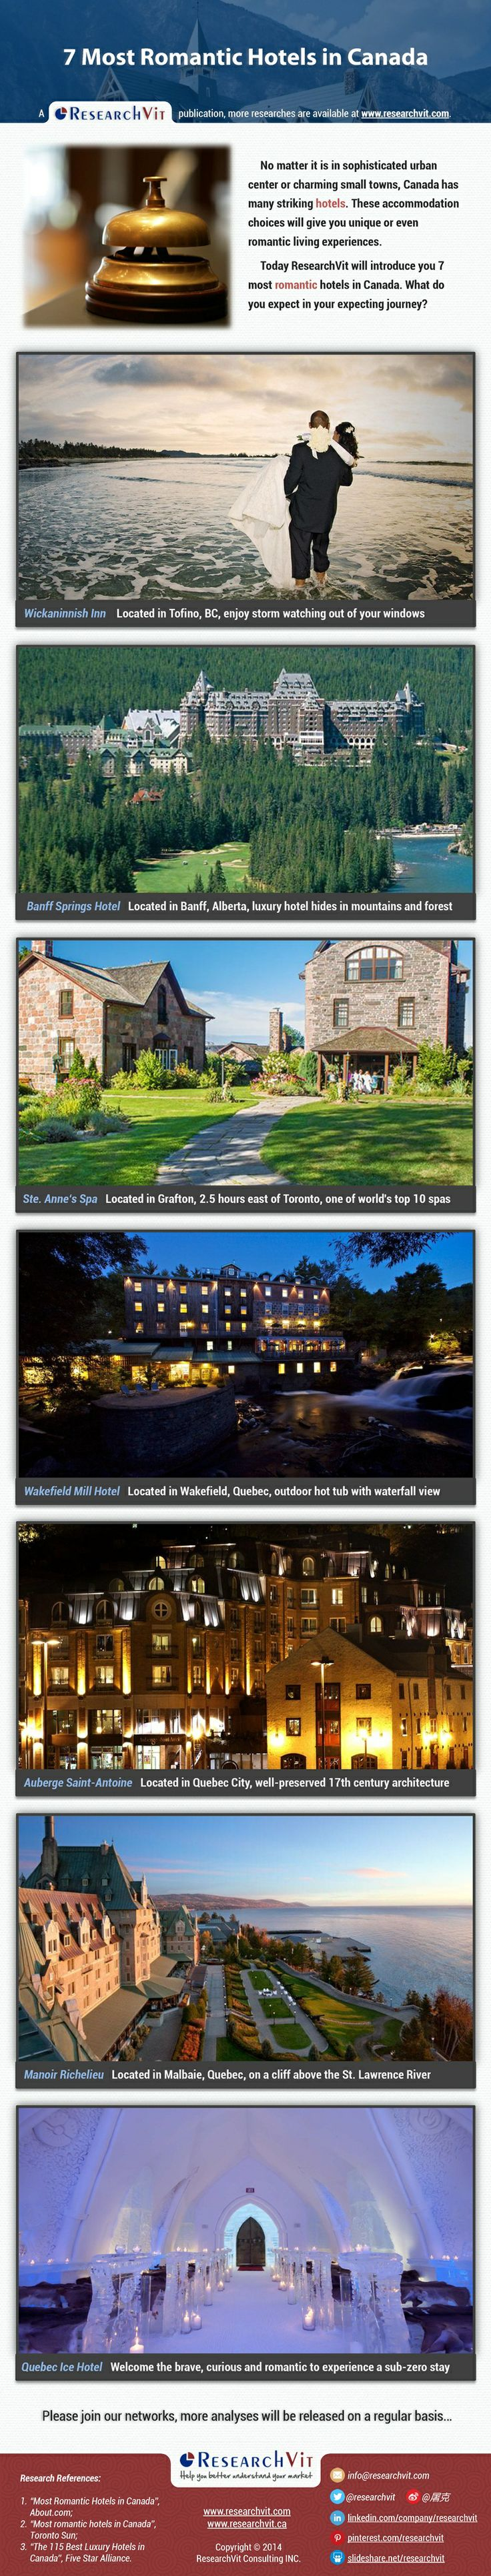 7 Most Romantic Hotels in Canada: No matter it is in sophisticated urban center or charming small towns, Canada has many striking hotels. These accommodation choices will give you unique or even romantic living experiences. Today ResearchVit will introduce you 7 most romantic hotels in Canada. What do you expect in your expecting journey?